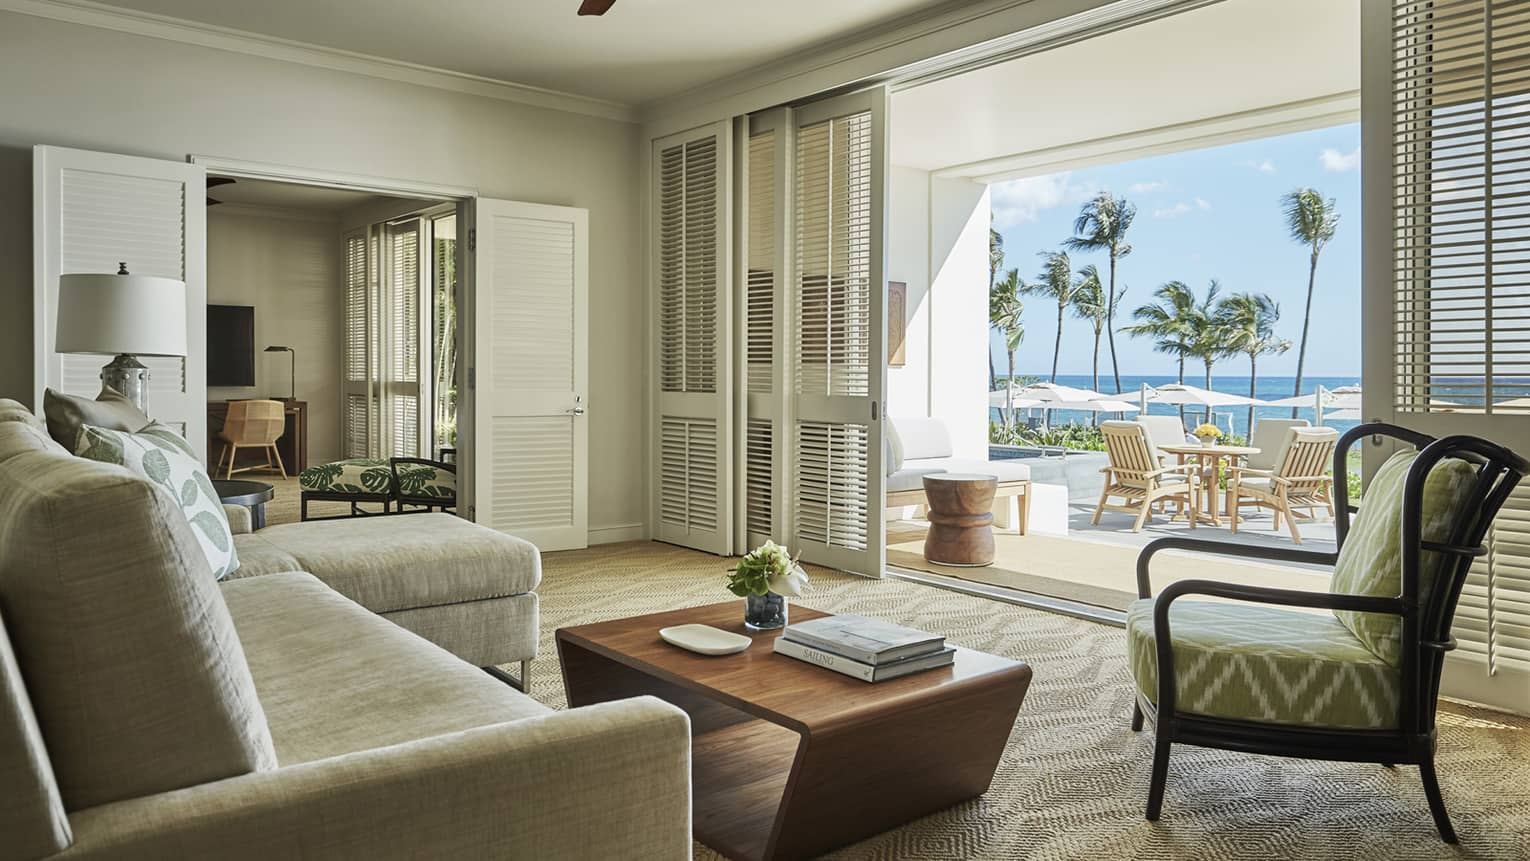 Pacific Suite living area with view to the ocean